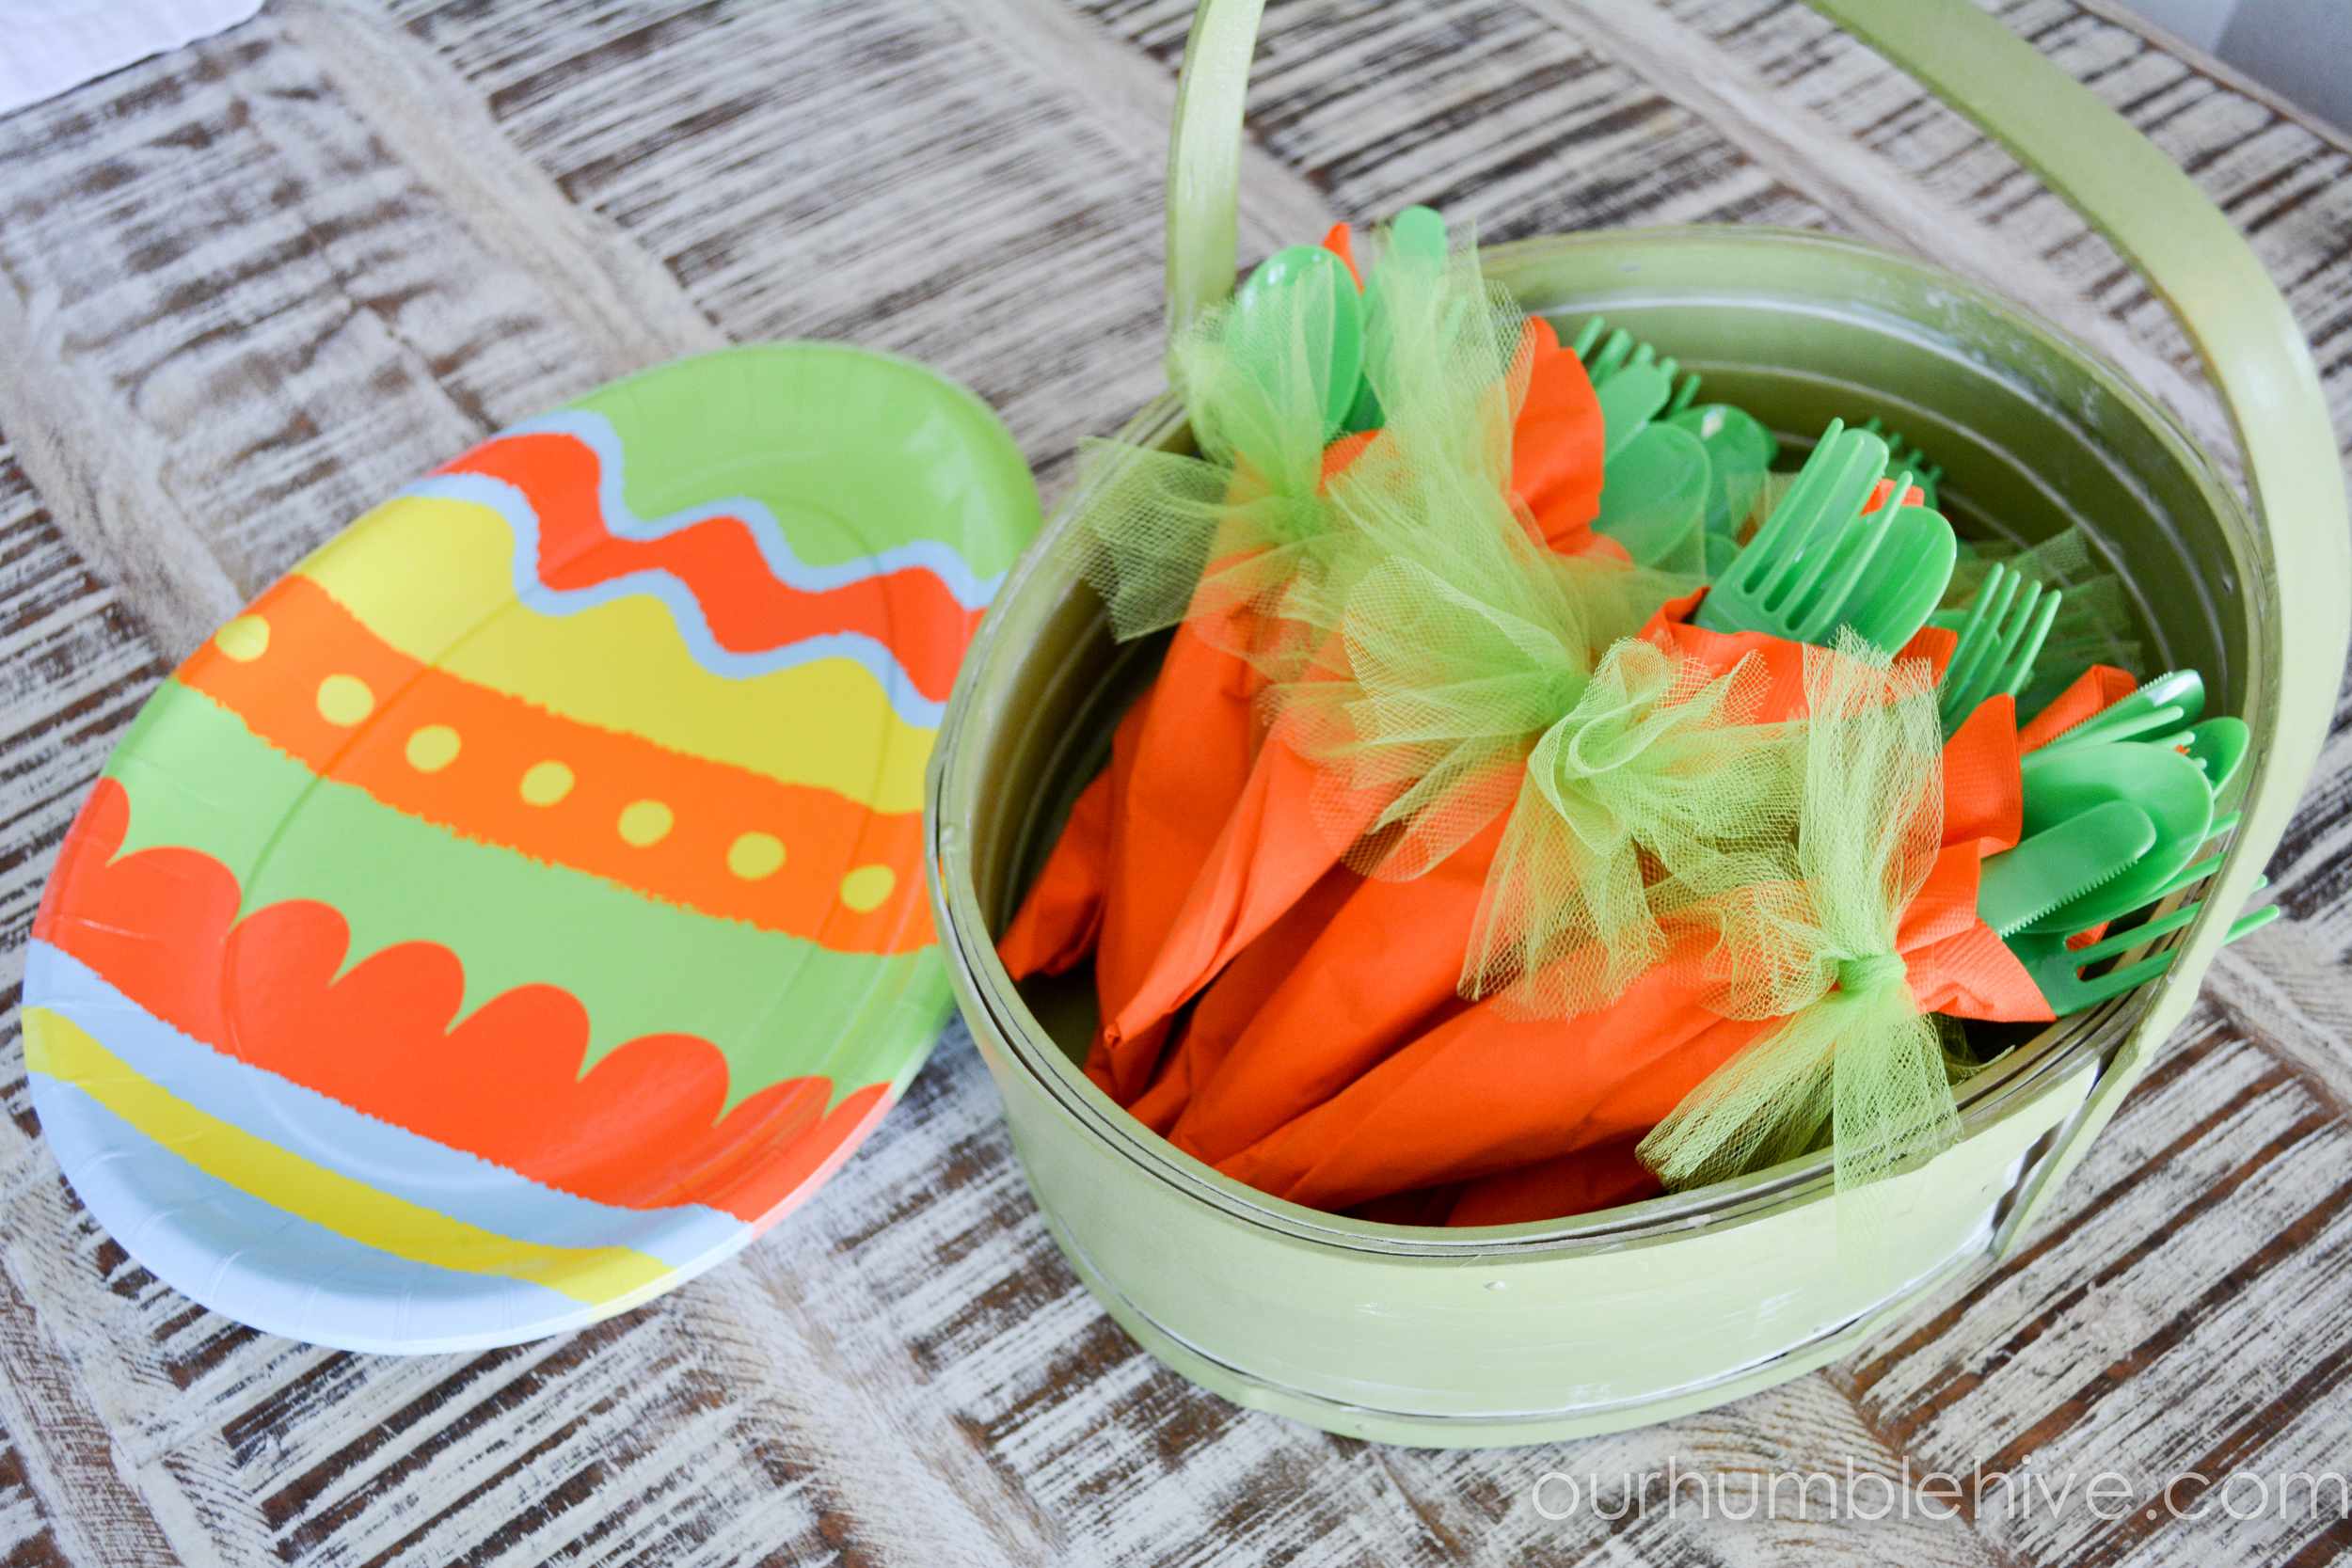 Picture of our Easter luncheon and cute carrot napkins, thanks to the Queen Bee (Maddie) for this fun idea.